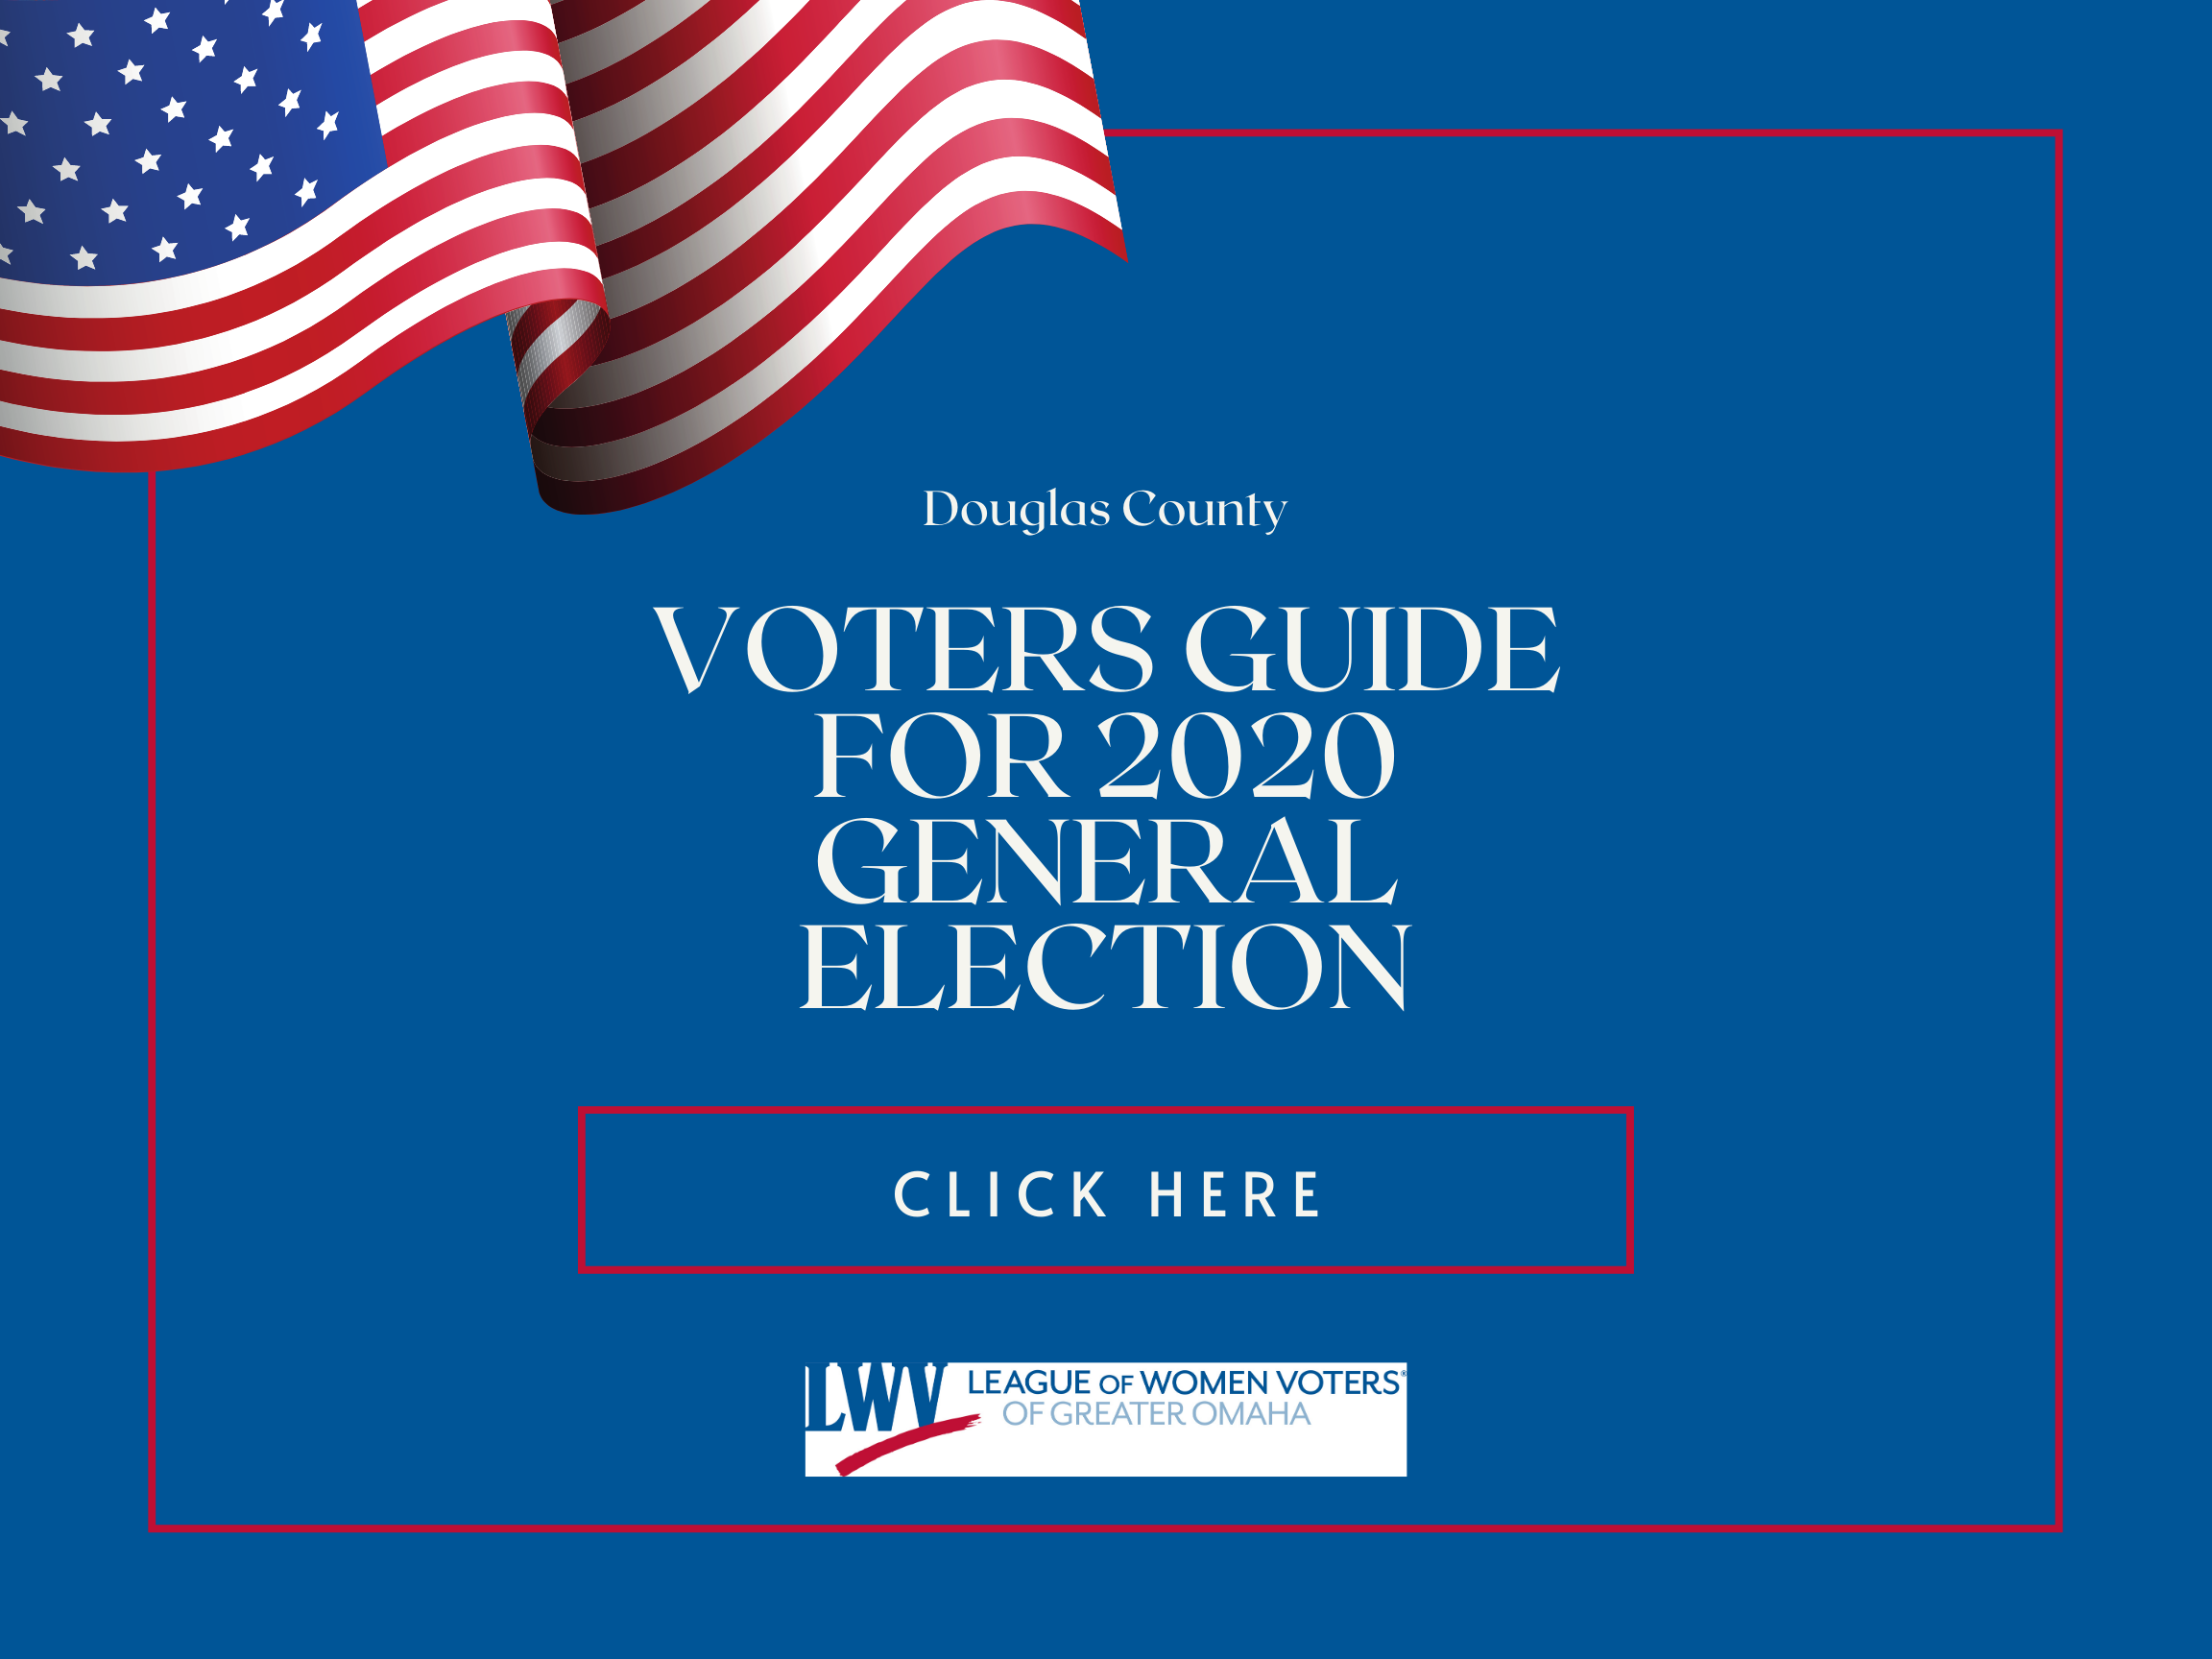 2020 general election voters guide